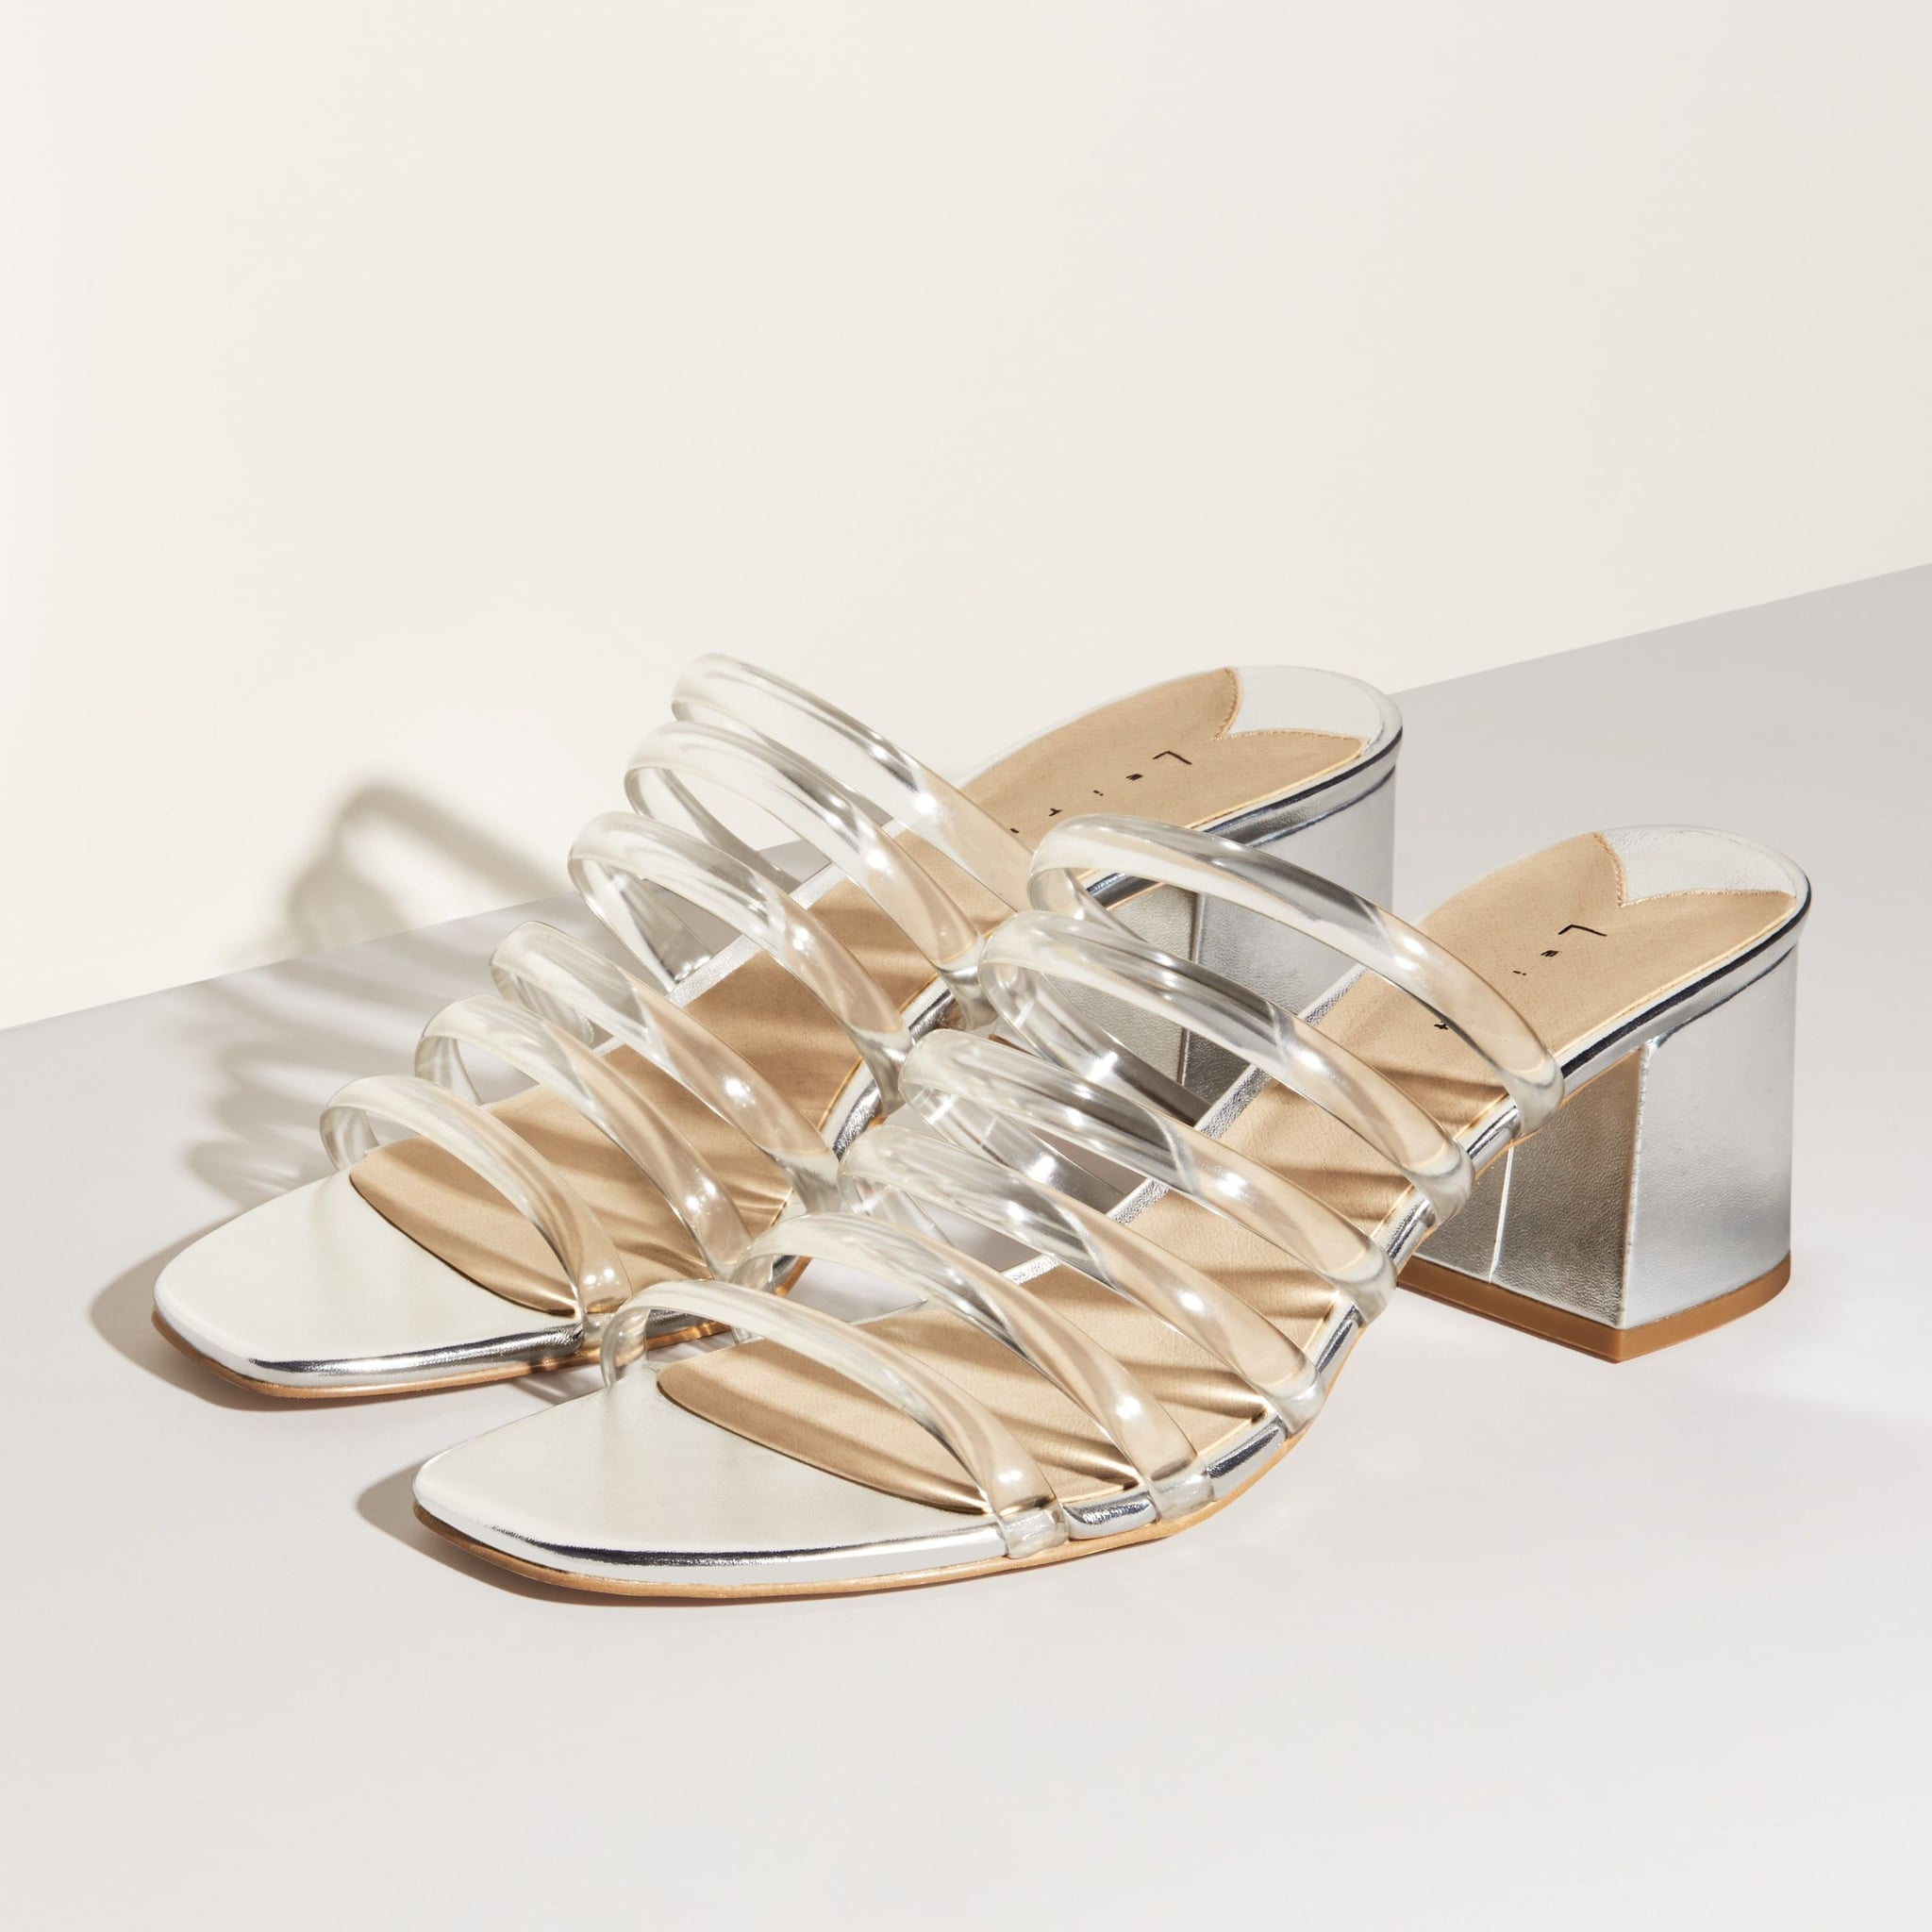 a6a9e4ce69c Topshop Williams Wraparound Espadrille Wedge | Best Sandals From ...